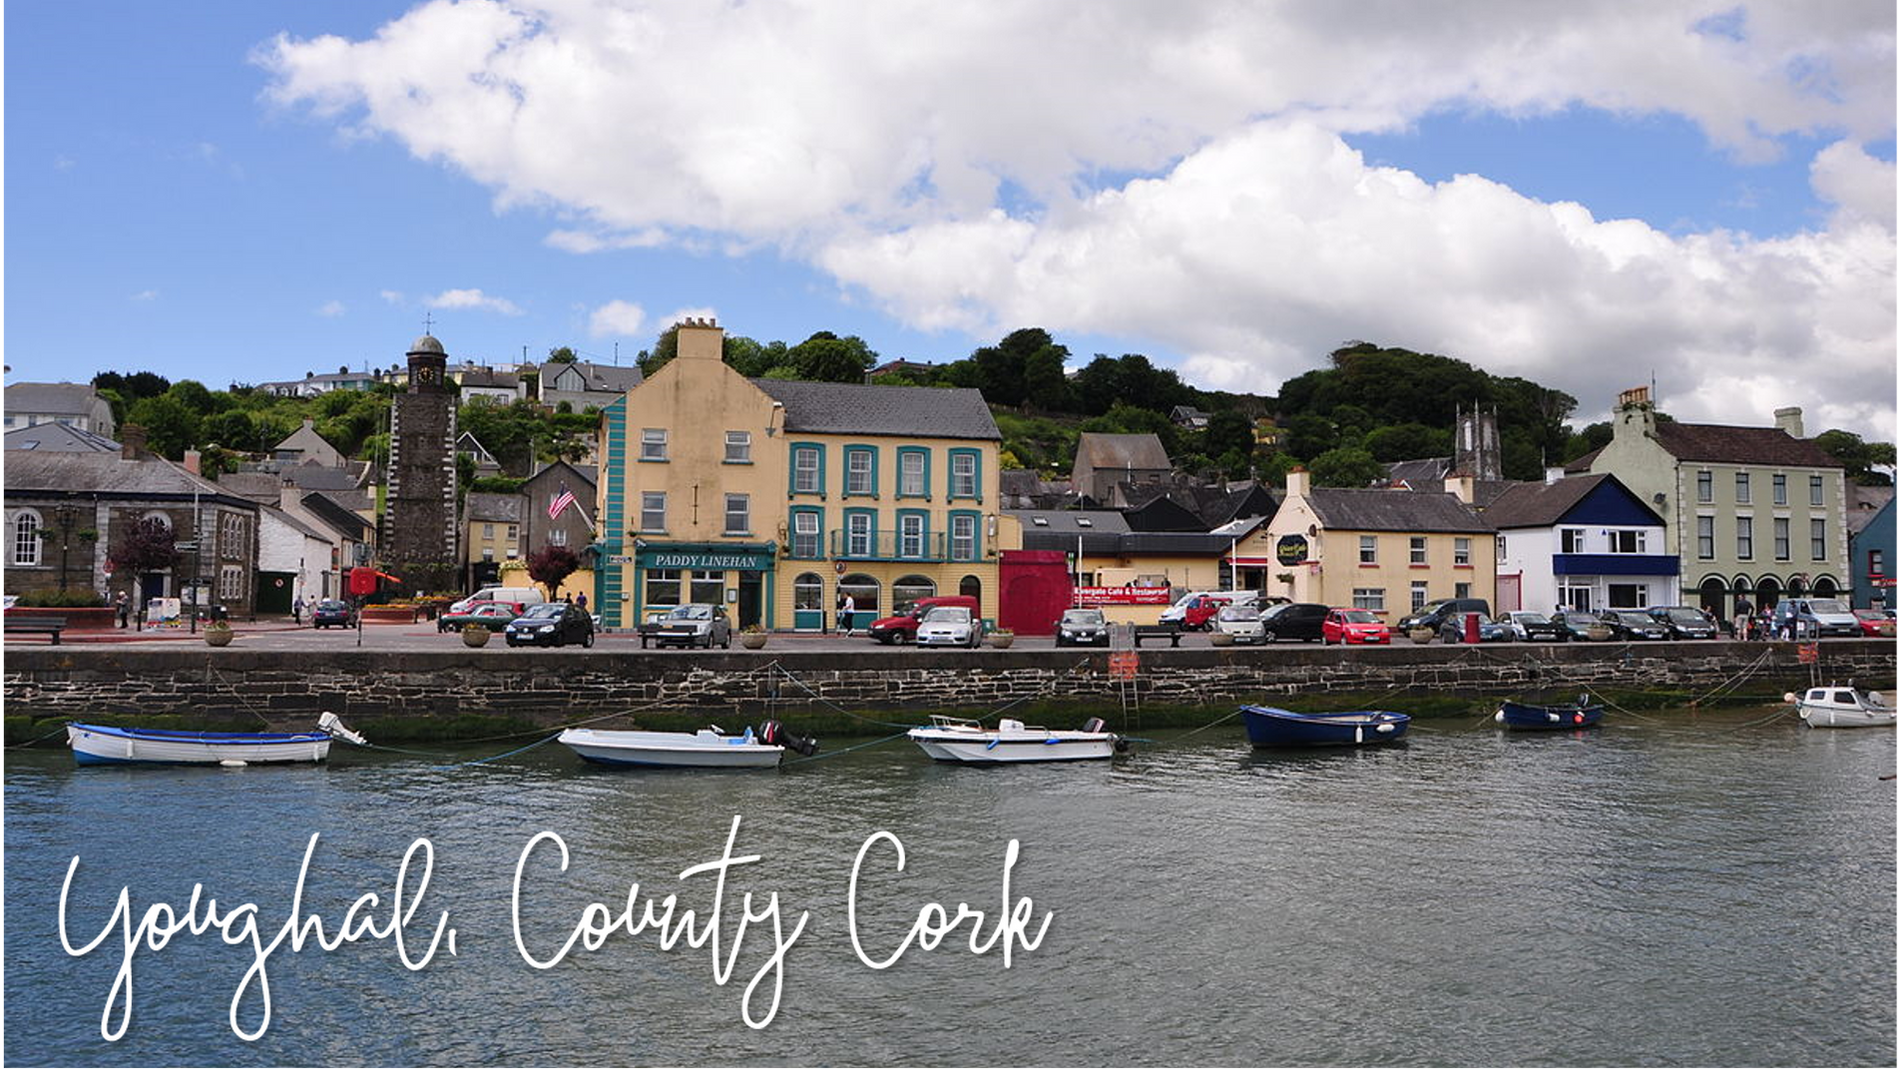 County Cork.png